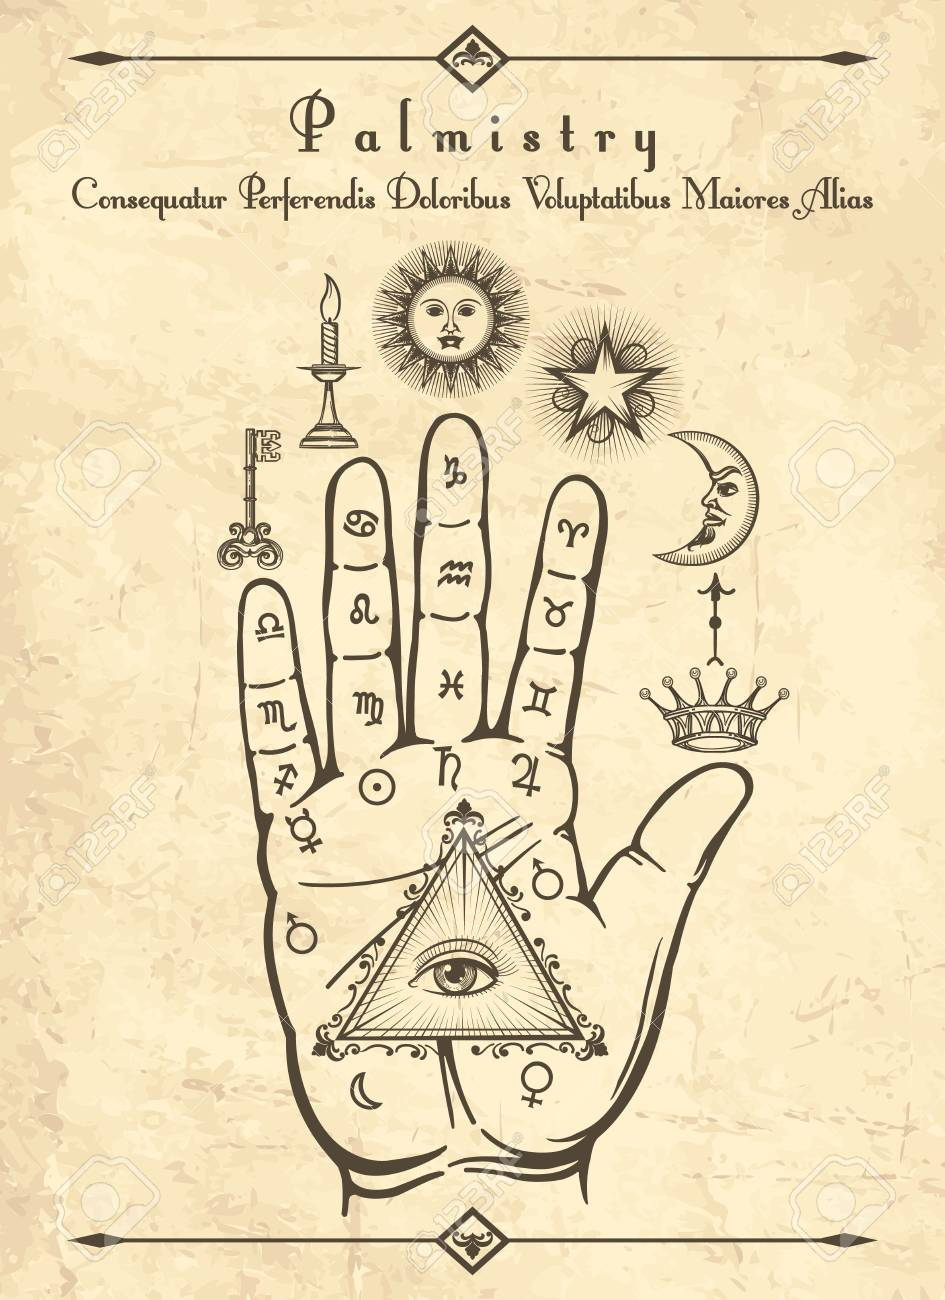 Vintage palmistry. Esoteric occult symbols on hand, palm of prophecy retro vector illustration - 103268909